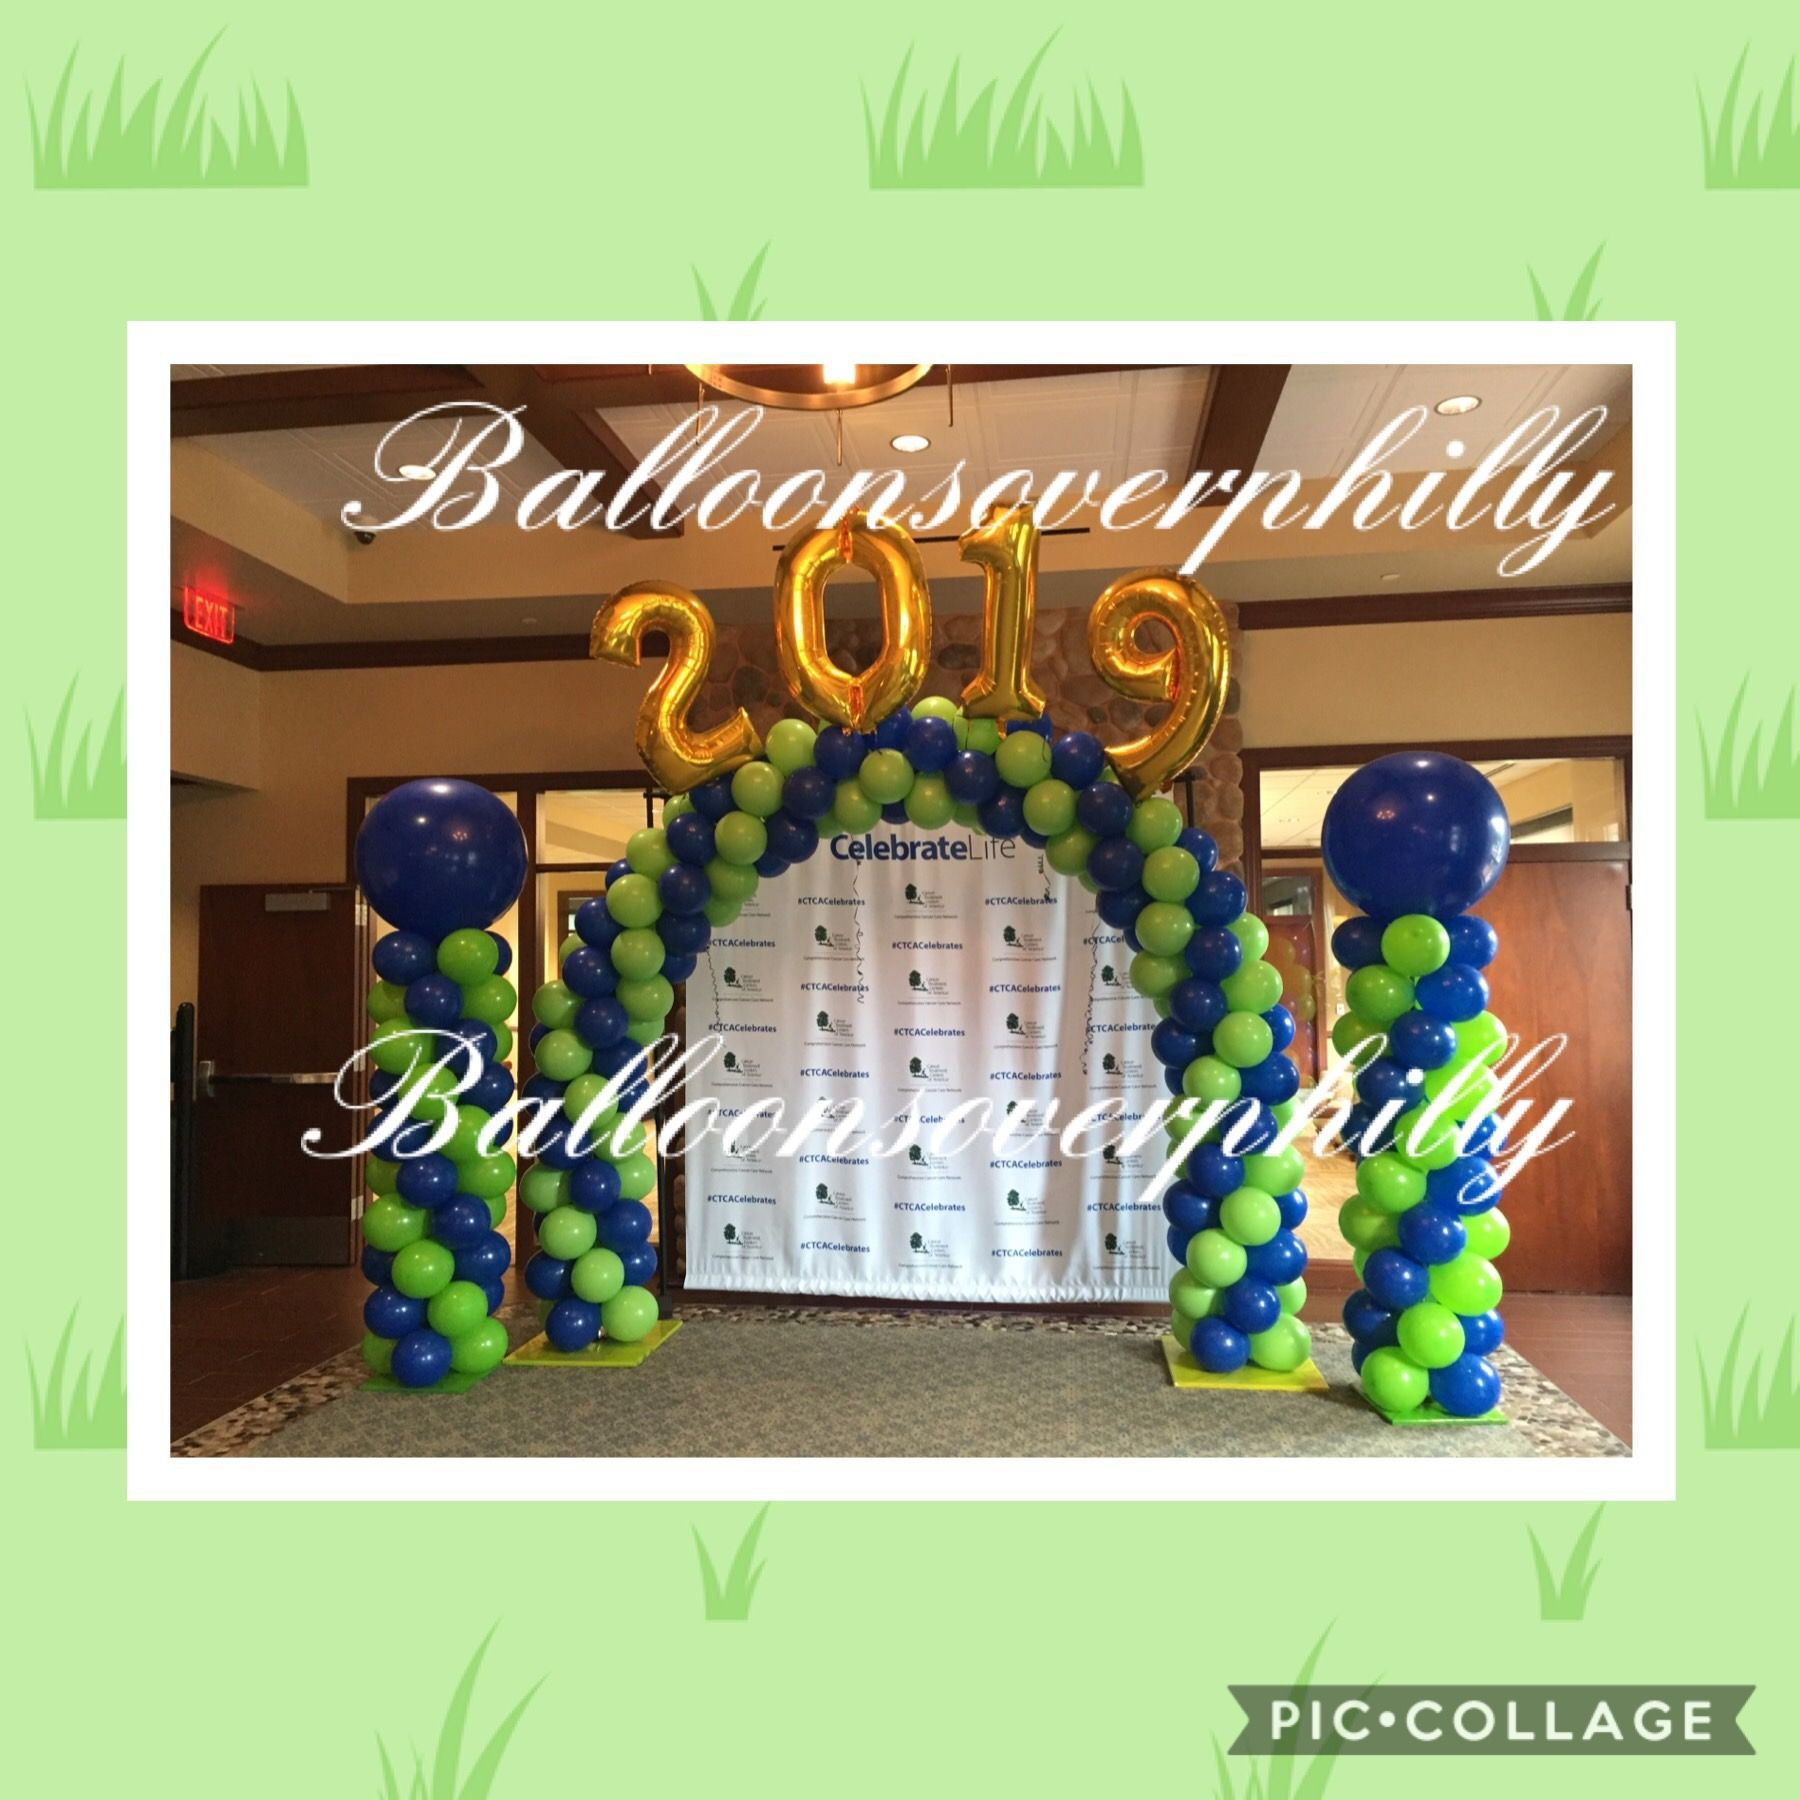 Balloon arches by Balloon Celebrations  Balloonsoverphilly.com  #balloonarch Balloon arches and balloon columns #balloonarch